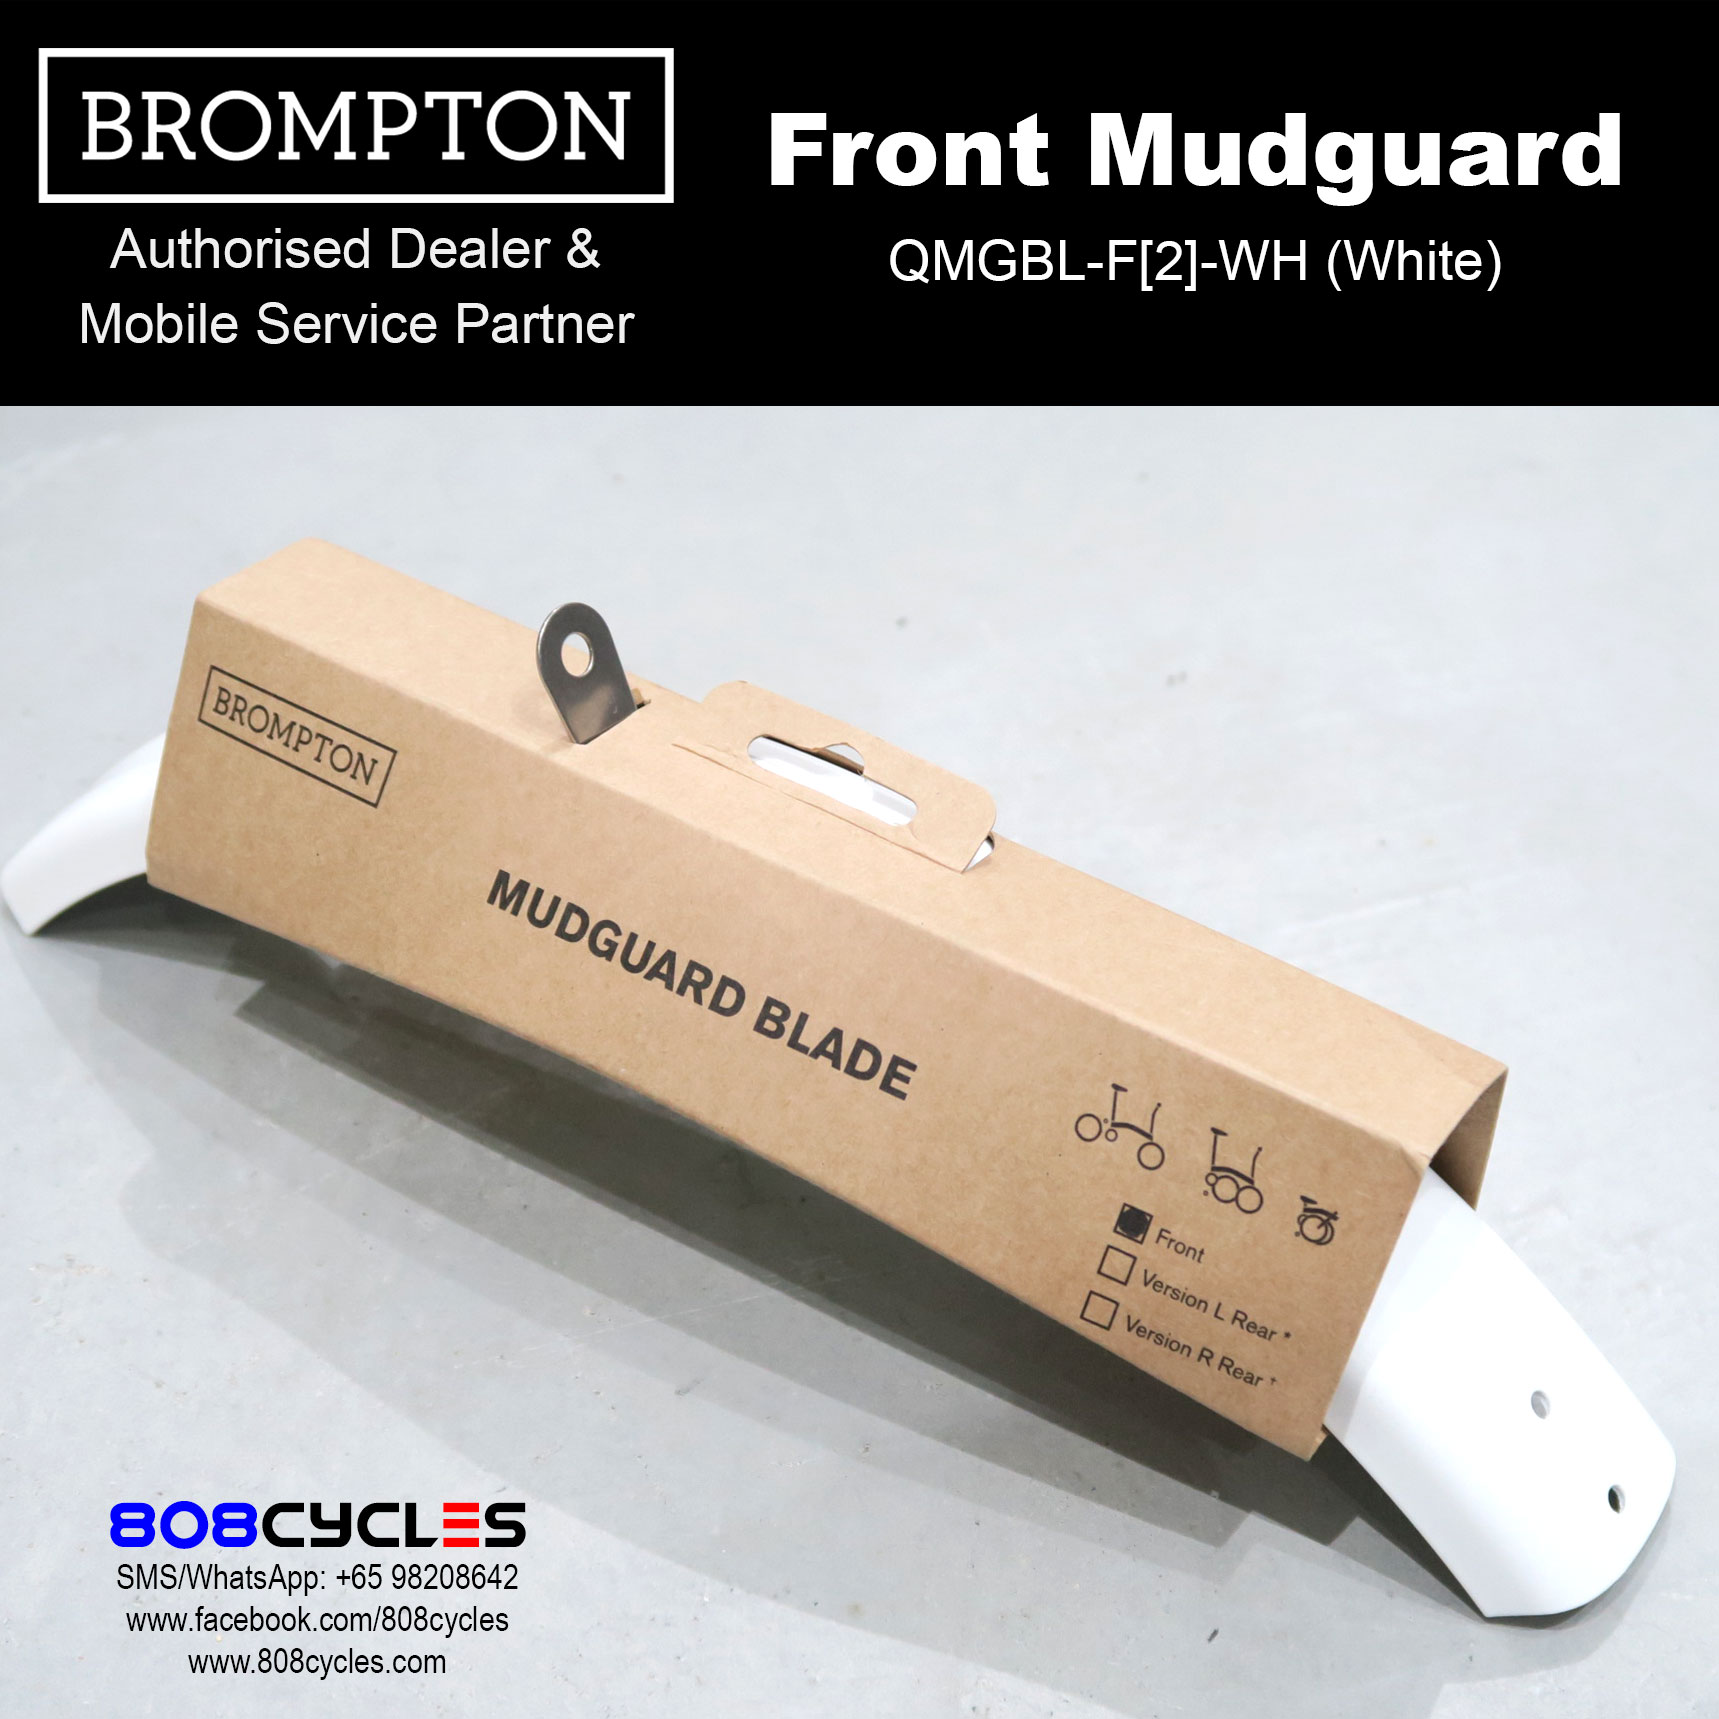 Brompton BLACK EDITION front mudguard blade and flap